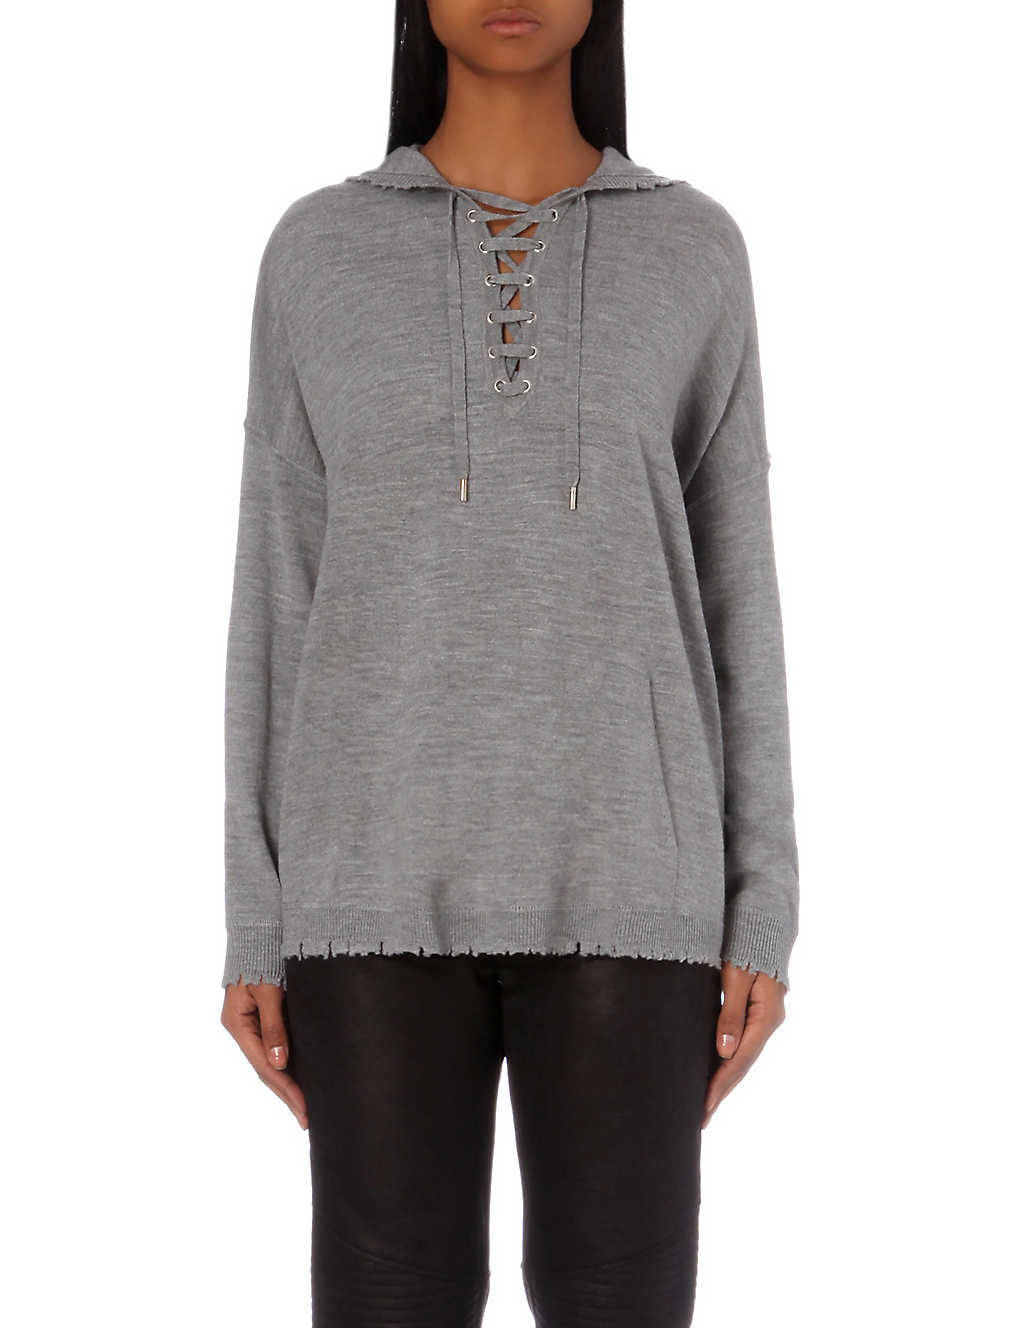 611906afca THE KOOPLES - Lace-up wool jumper